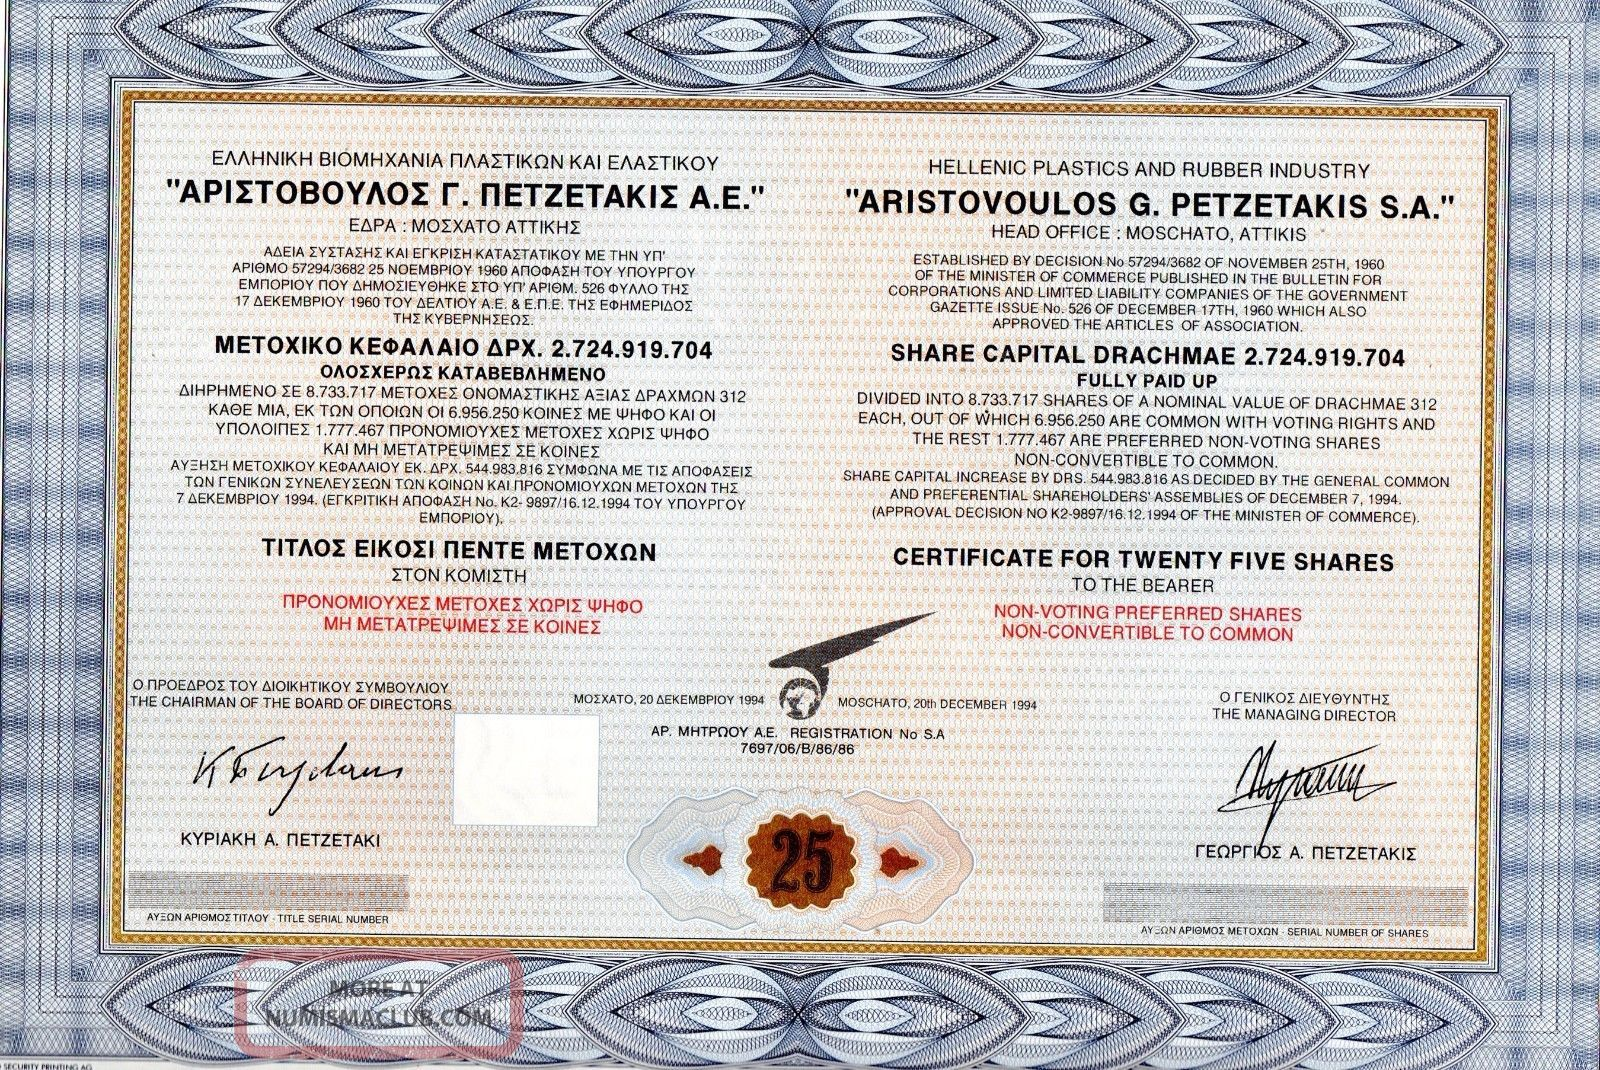 Gr Plastic,  Rubber Petzetakis Sa Title Of 25 Shares Bond Stock Certificate 1994 World photo